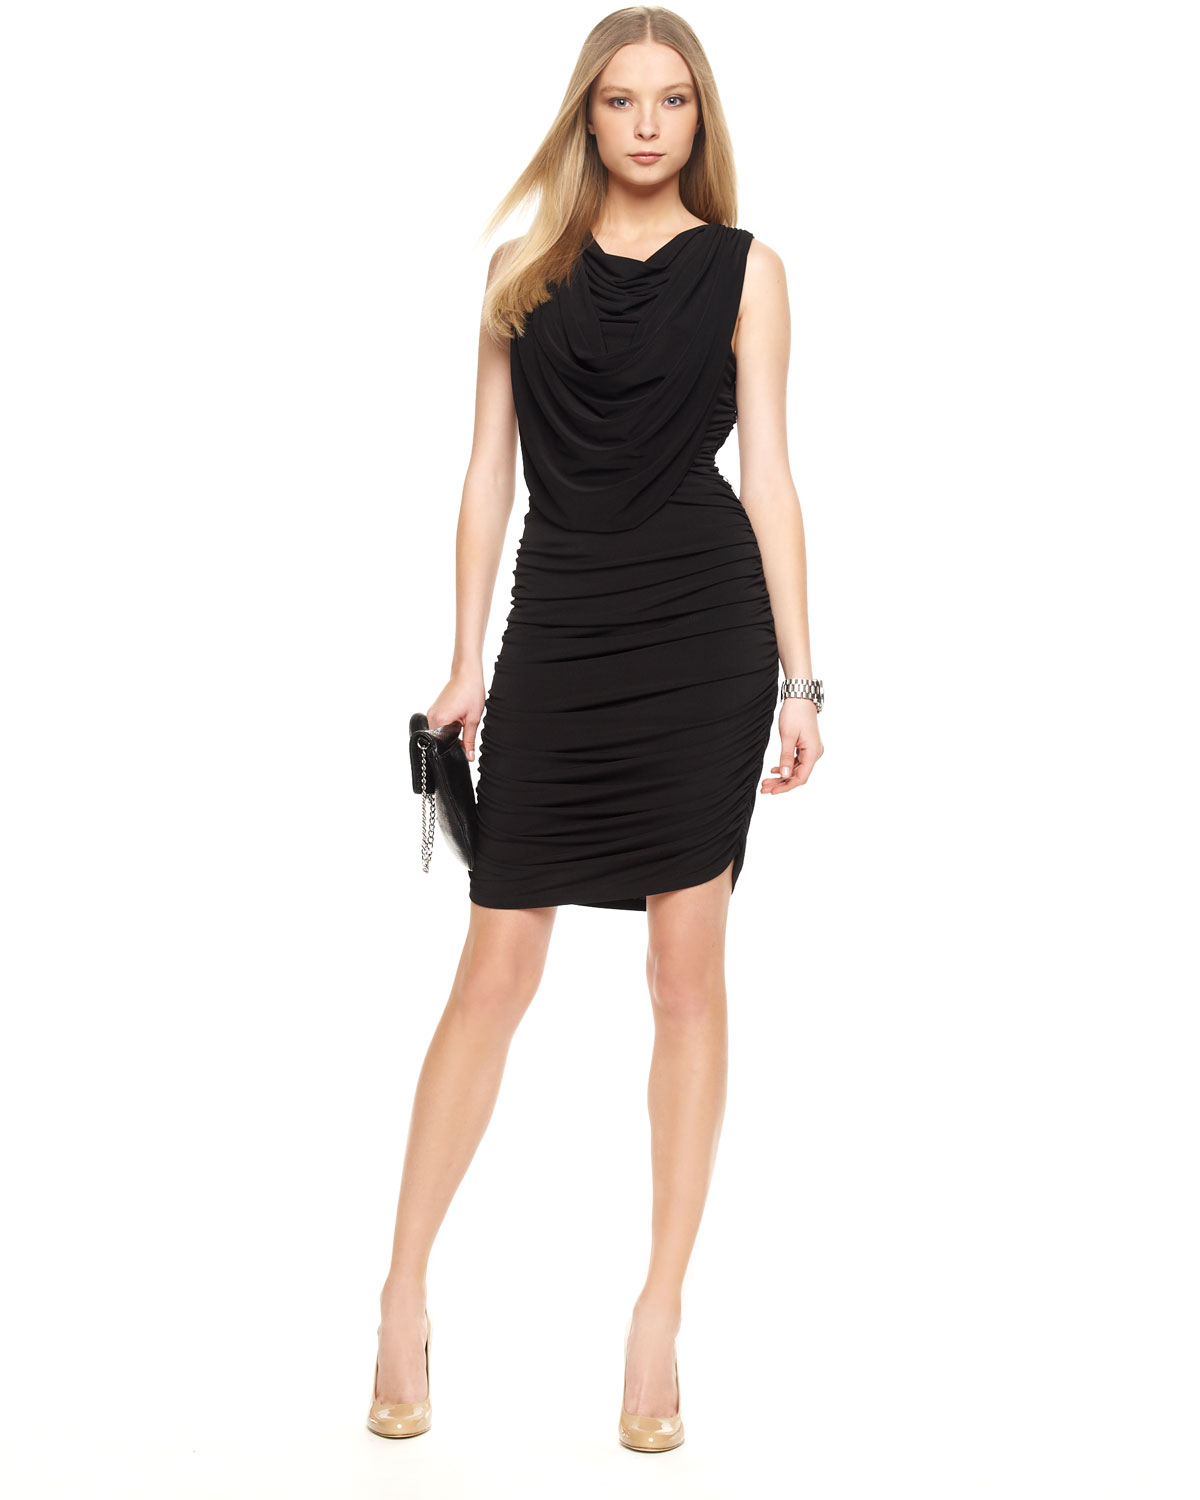 Michael michael kors Open-back Ruched Dress in Black | Lyst